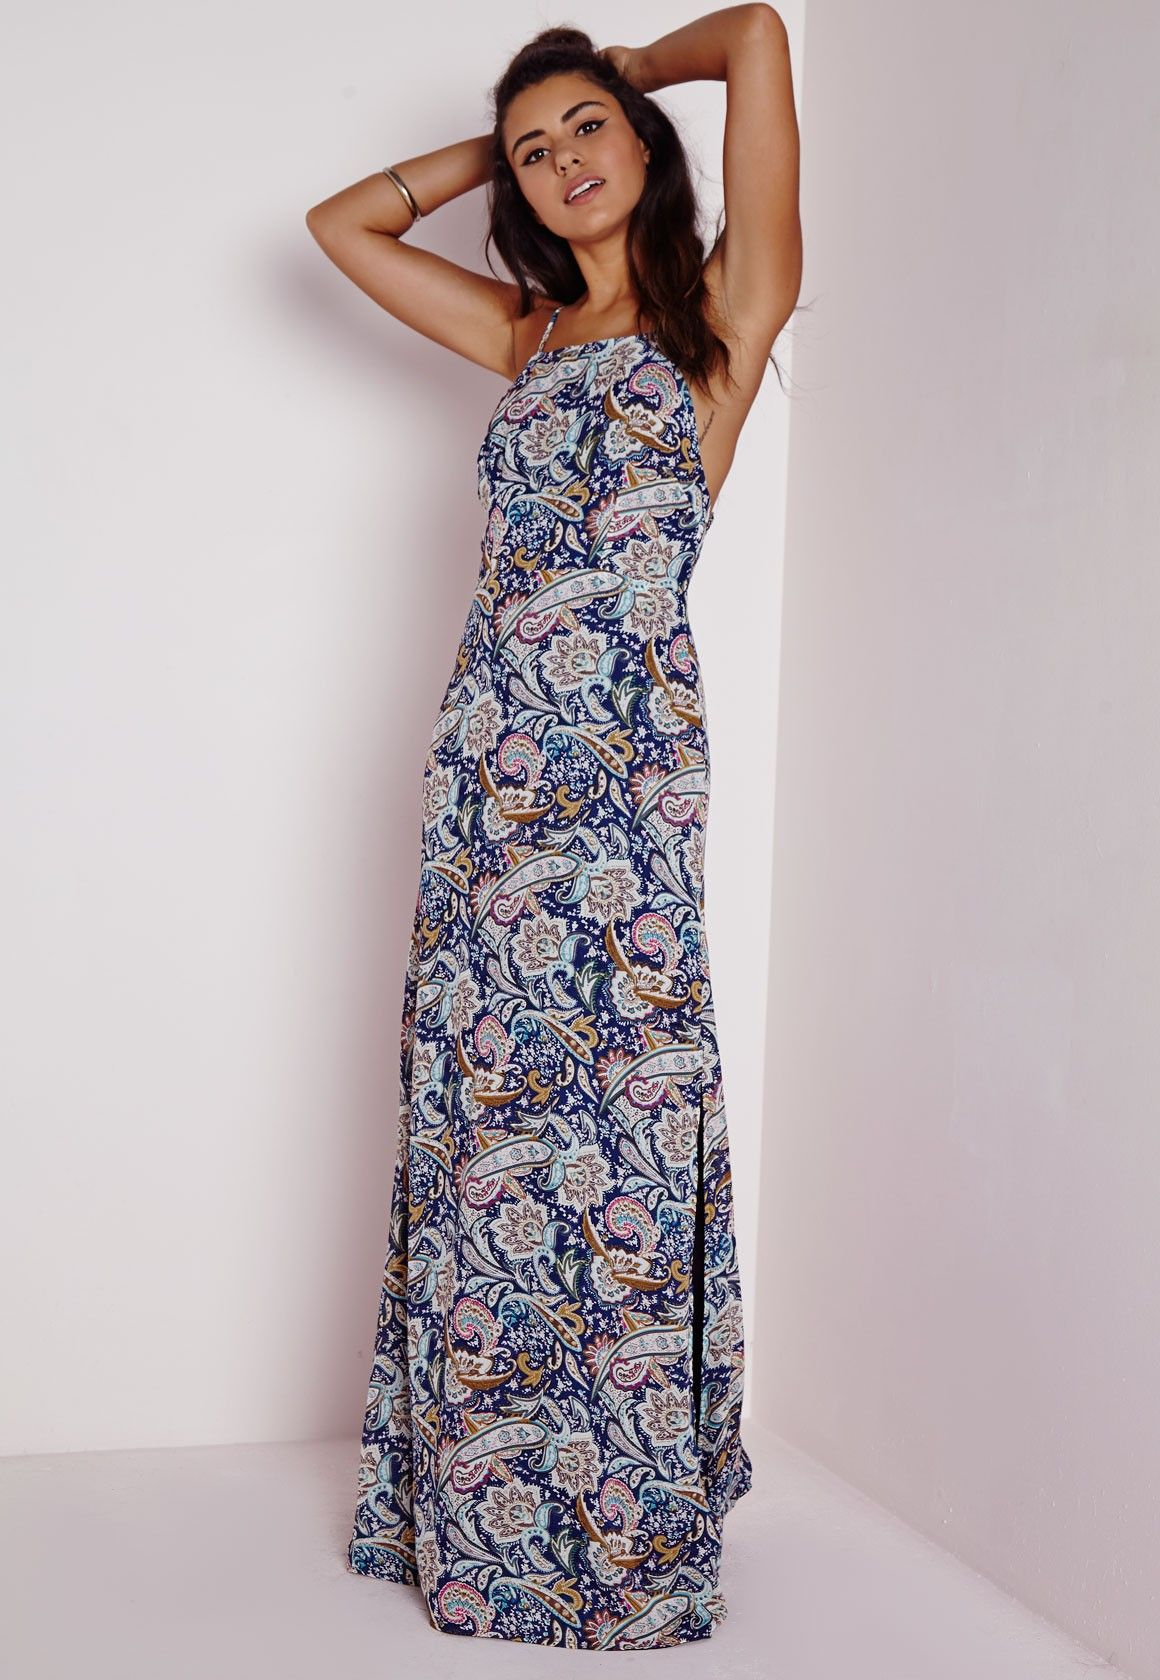 a1a141141fd8 Missguided - Cross Back Side Split Maxi Dress Navy Paisley Print ...